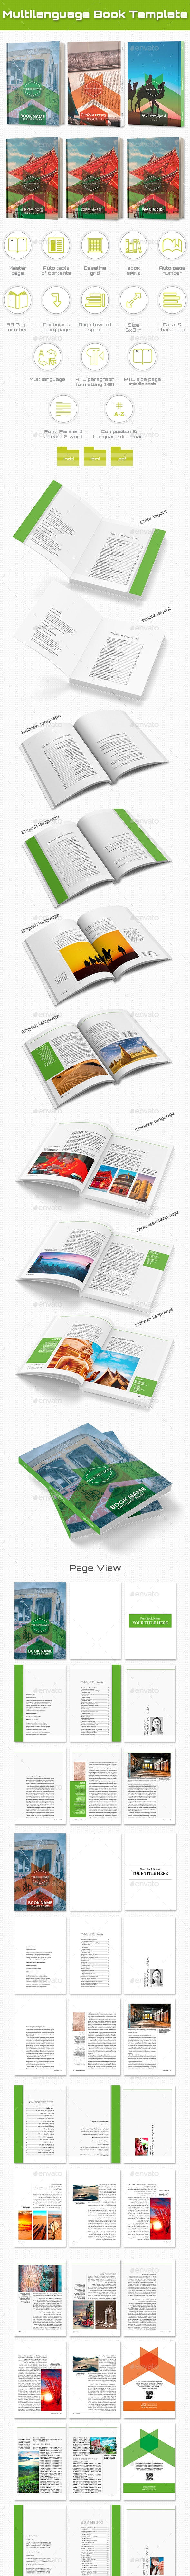 Indesign Multilanguage Book Template by hthelal | GraphicRiver